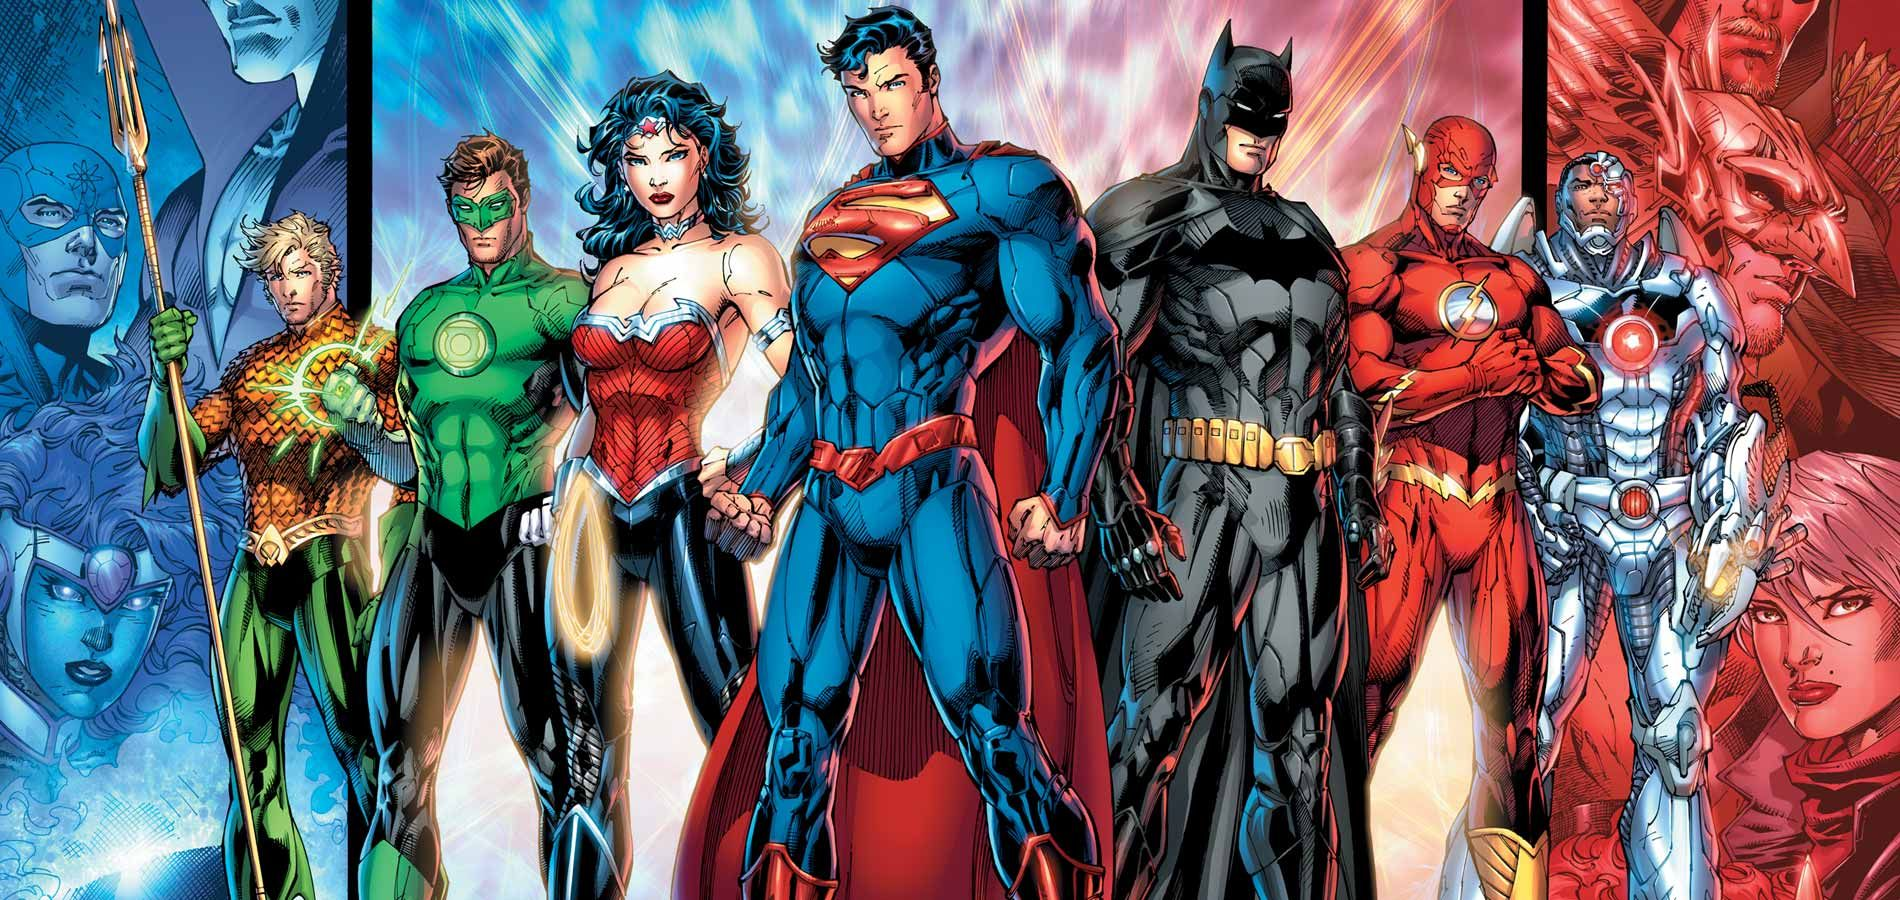 Zack Snyder to direct Justice League movie